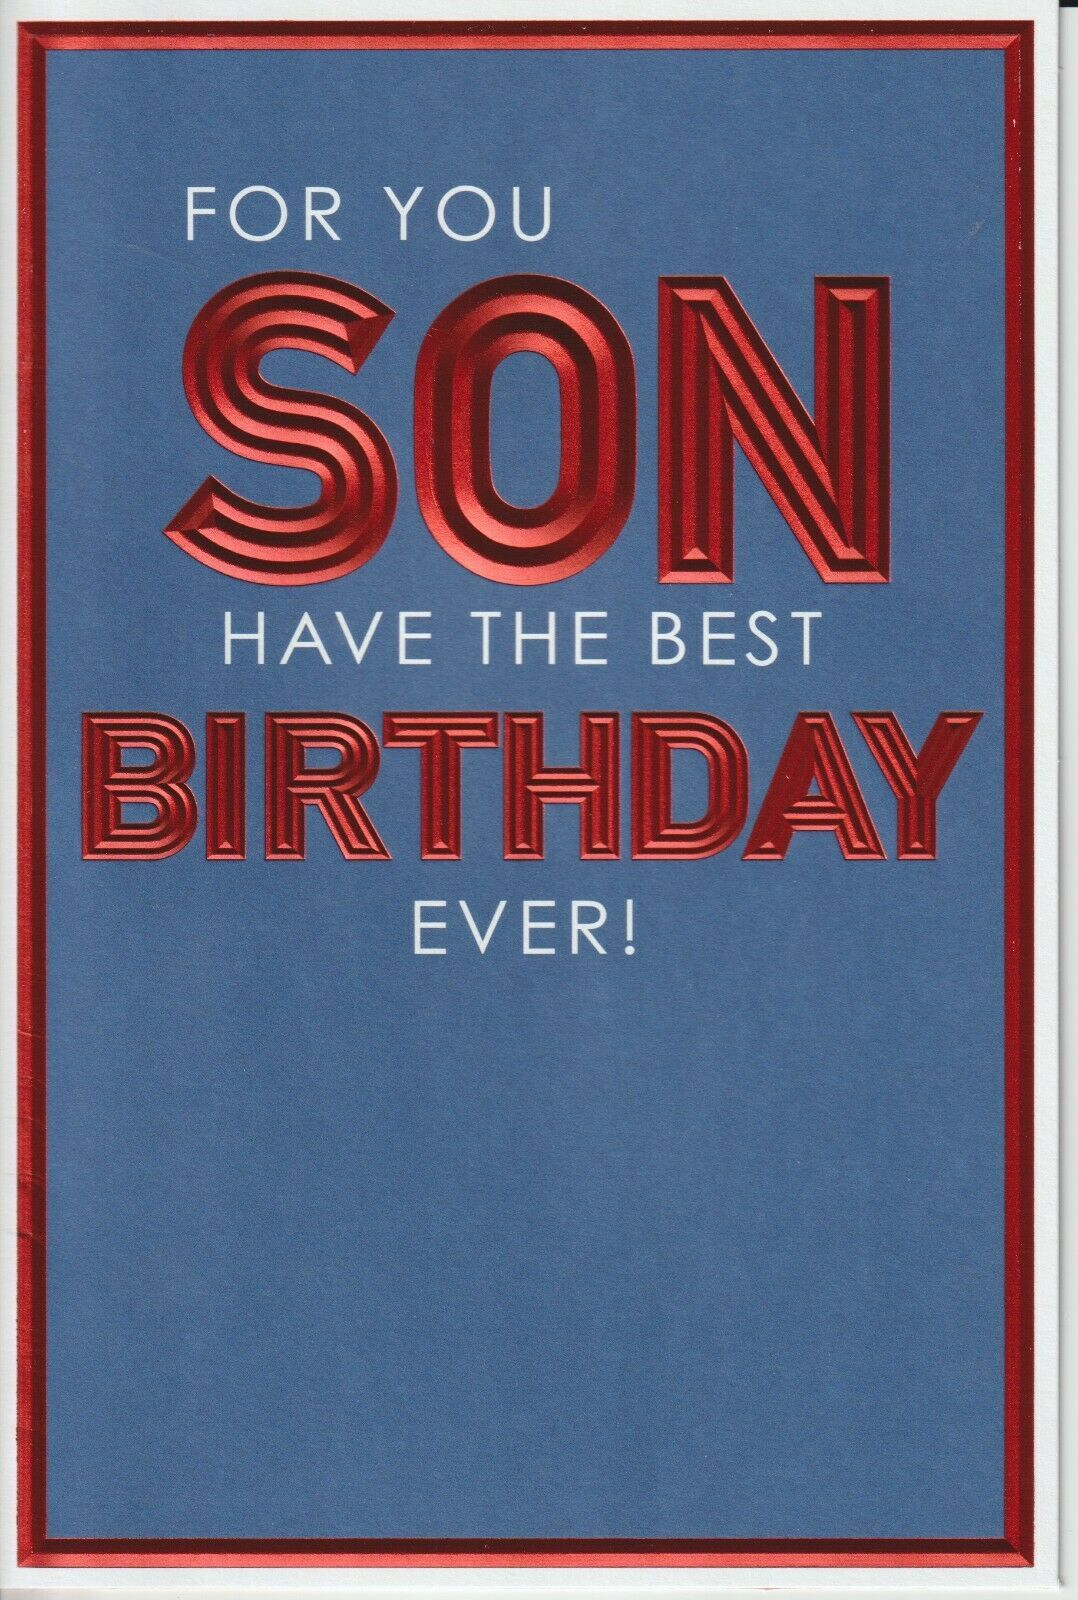 For You Son Have The Best Birthday Ever!